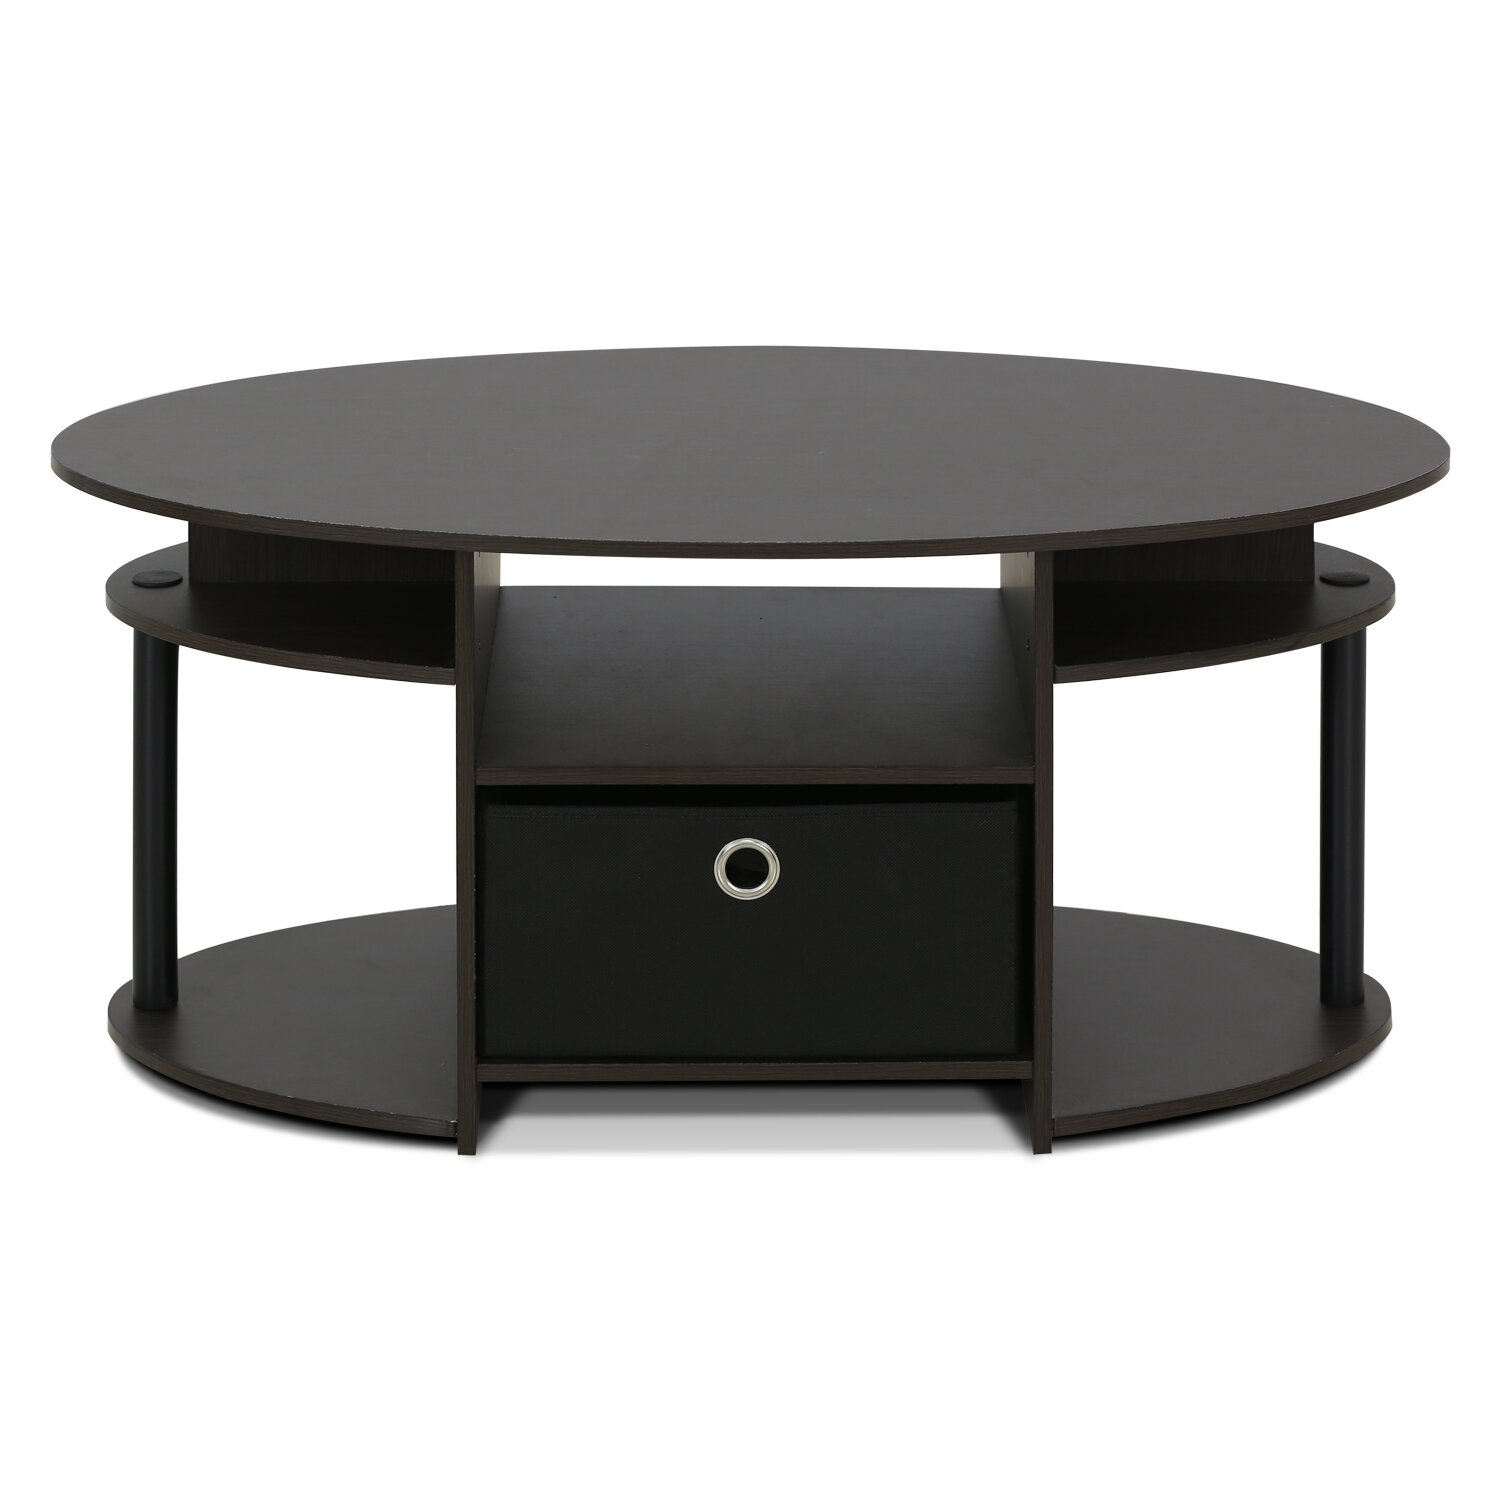 Zipcode design amani simple design coffee table with bin for Regulation 85 table a